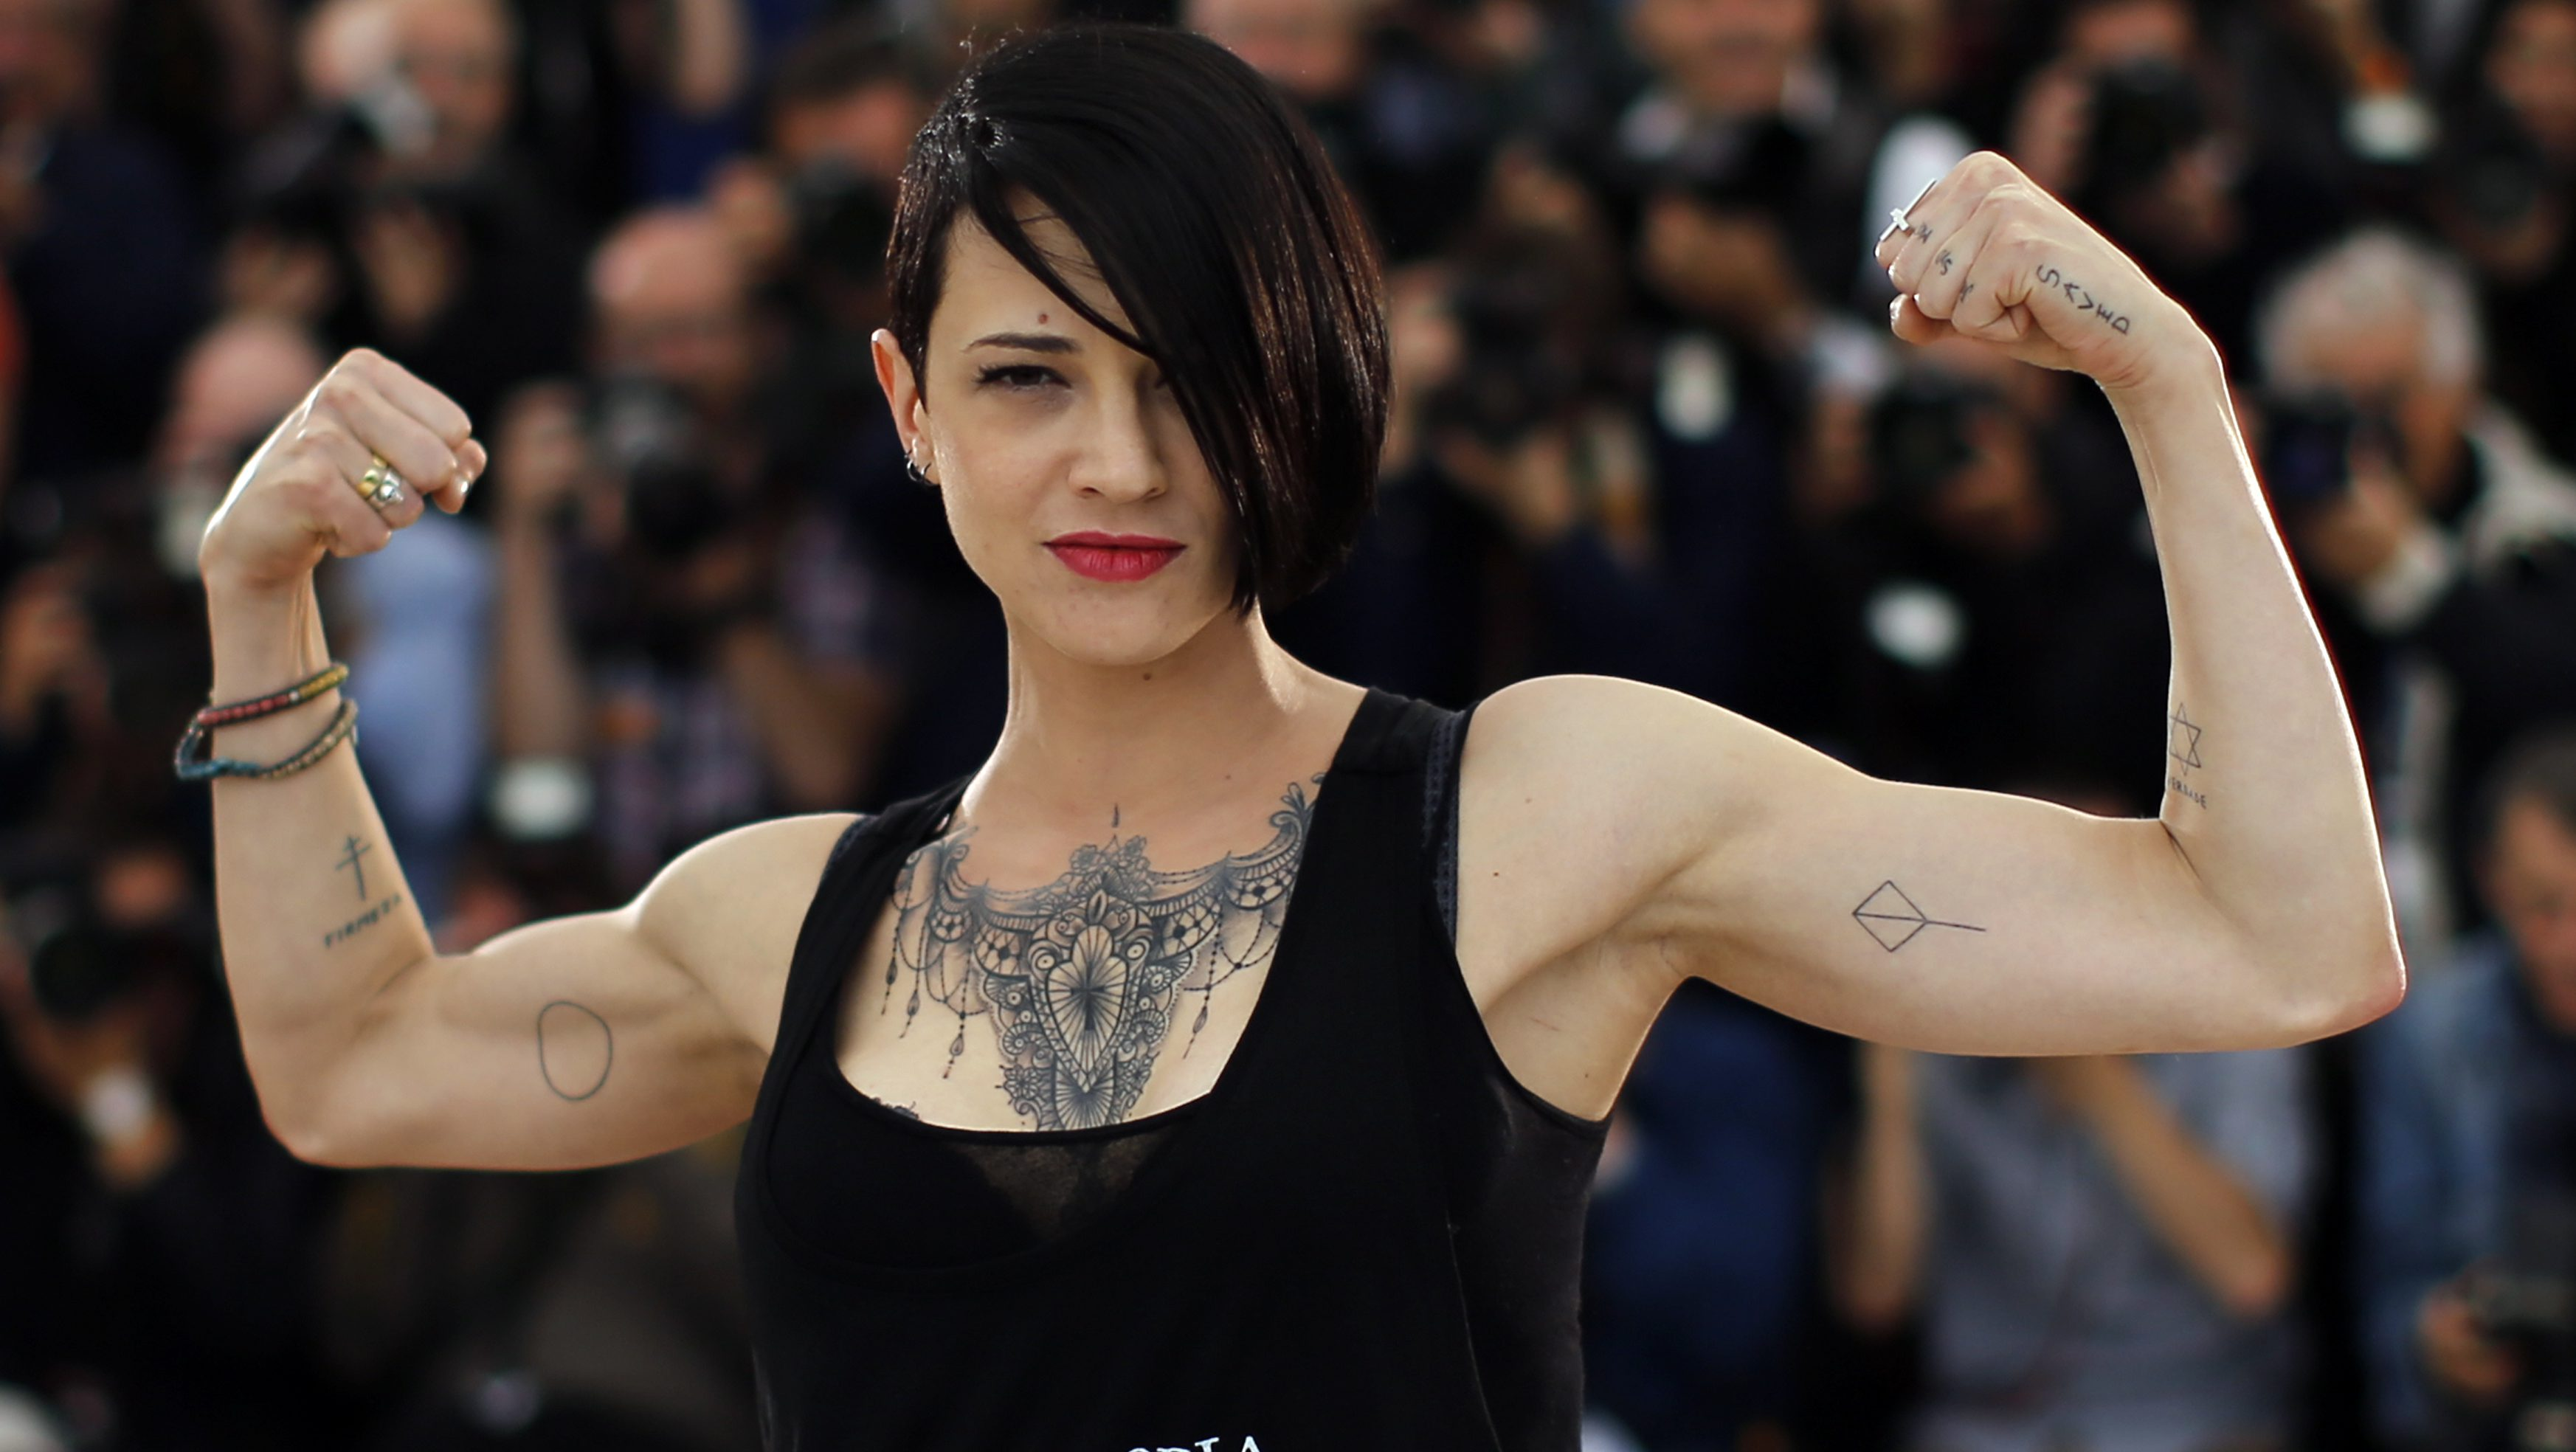 italy s response to asia argento s sexual assault claims